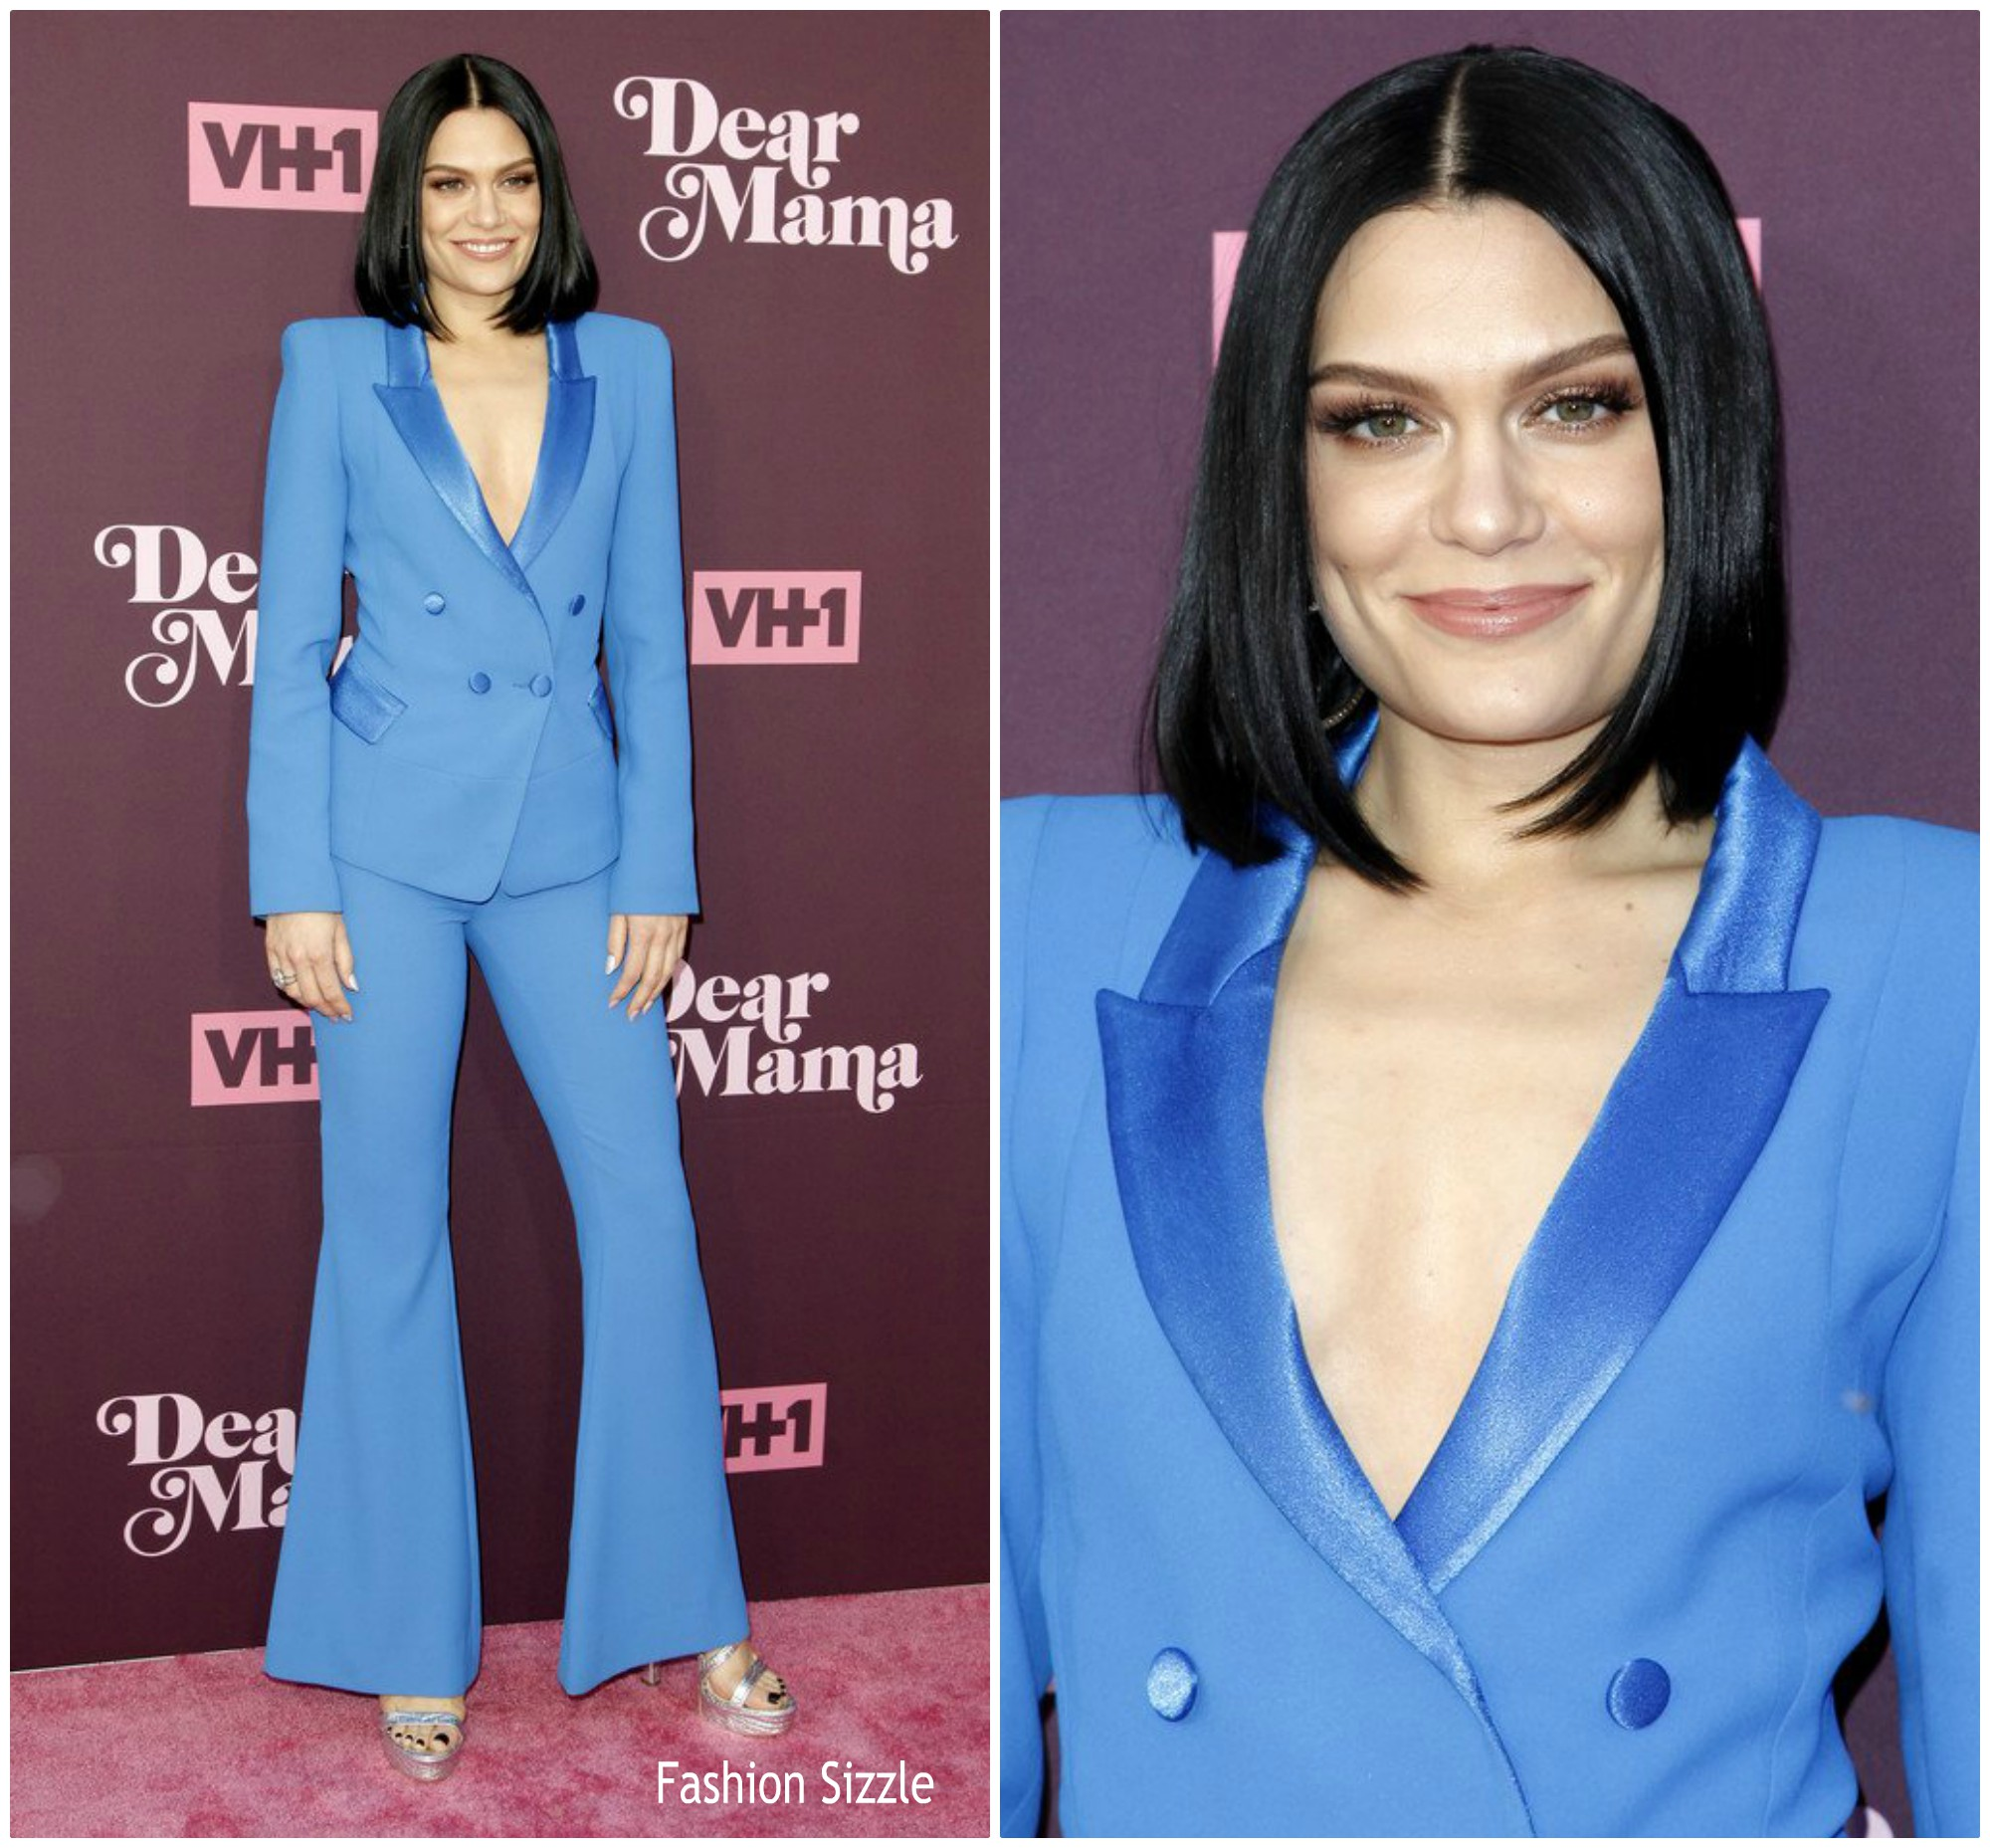 jessie-j-barrus-london-vh1s-3rd-annual-dear-mama-a-love-letter-to-moms-screening